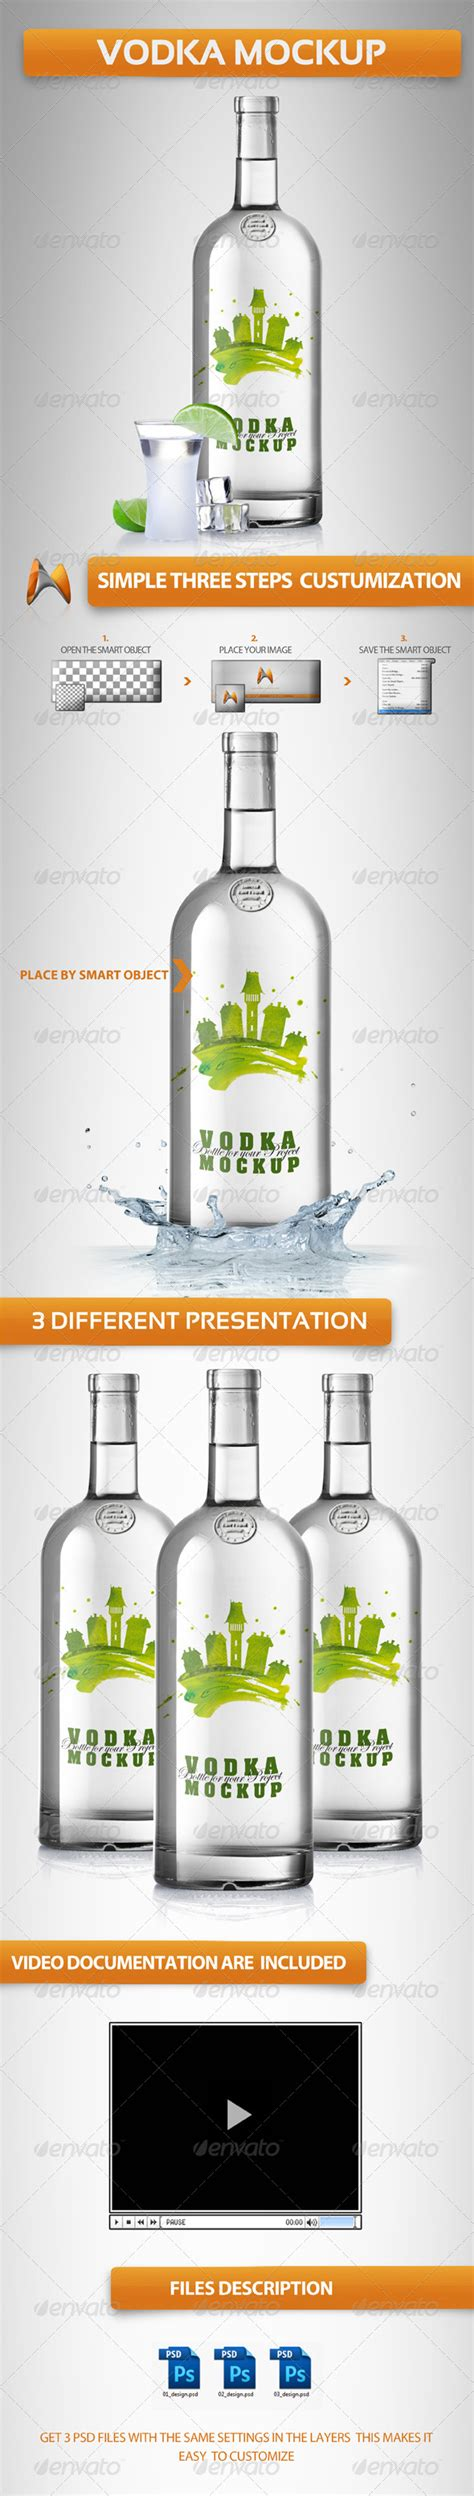 emoji vodka vodka glass emoji 187 tinkytyler org stock photos graphics